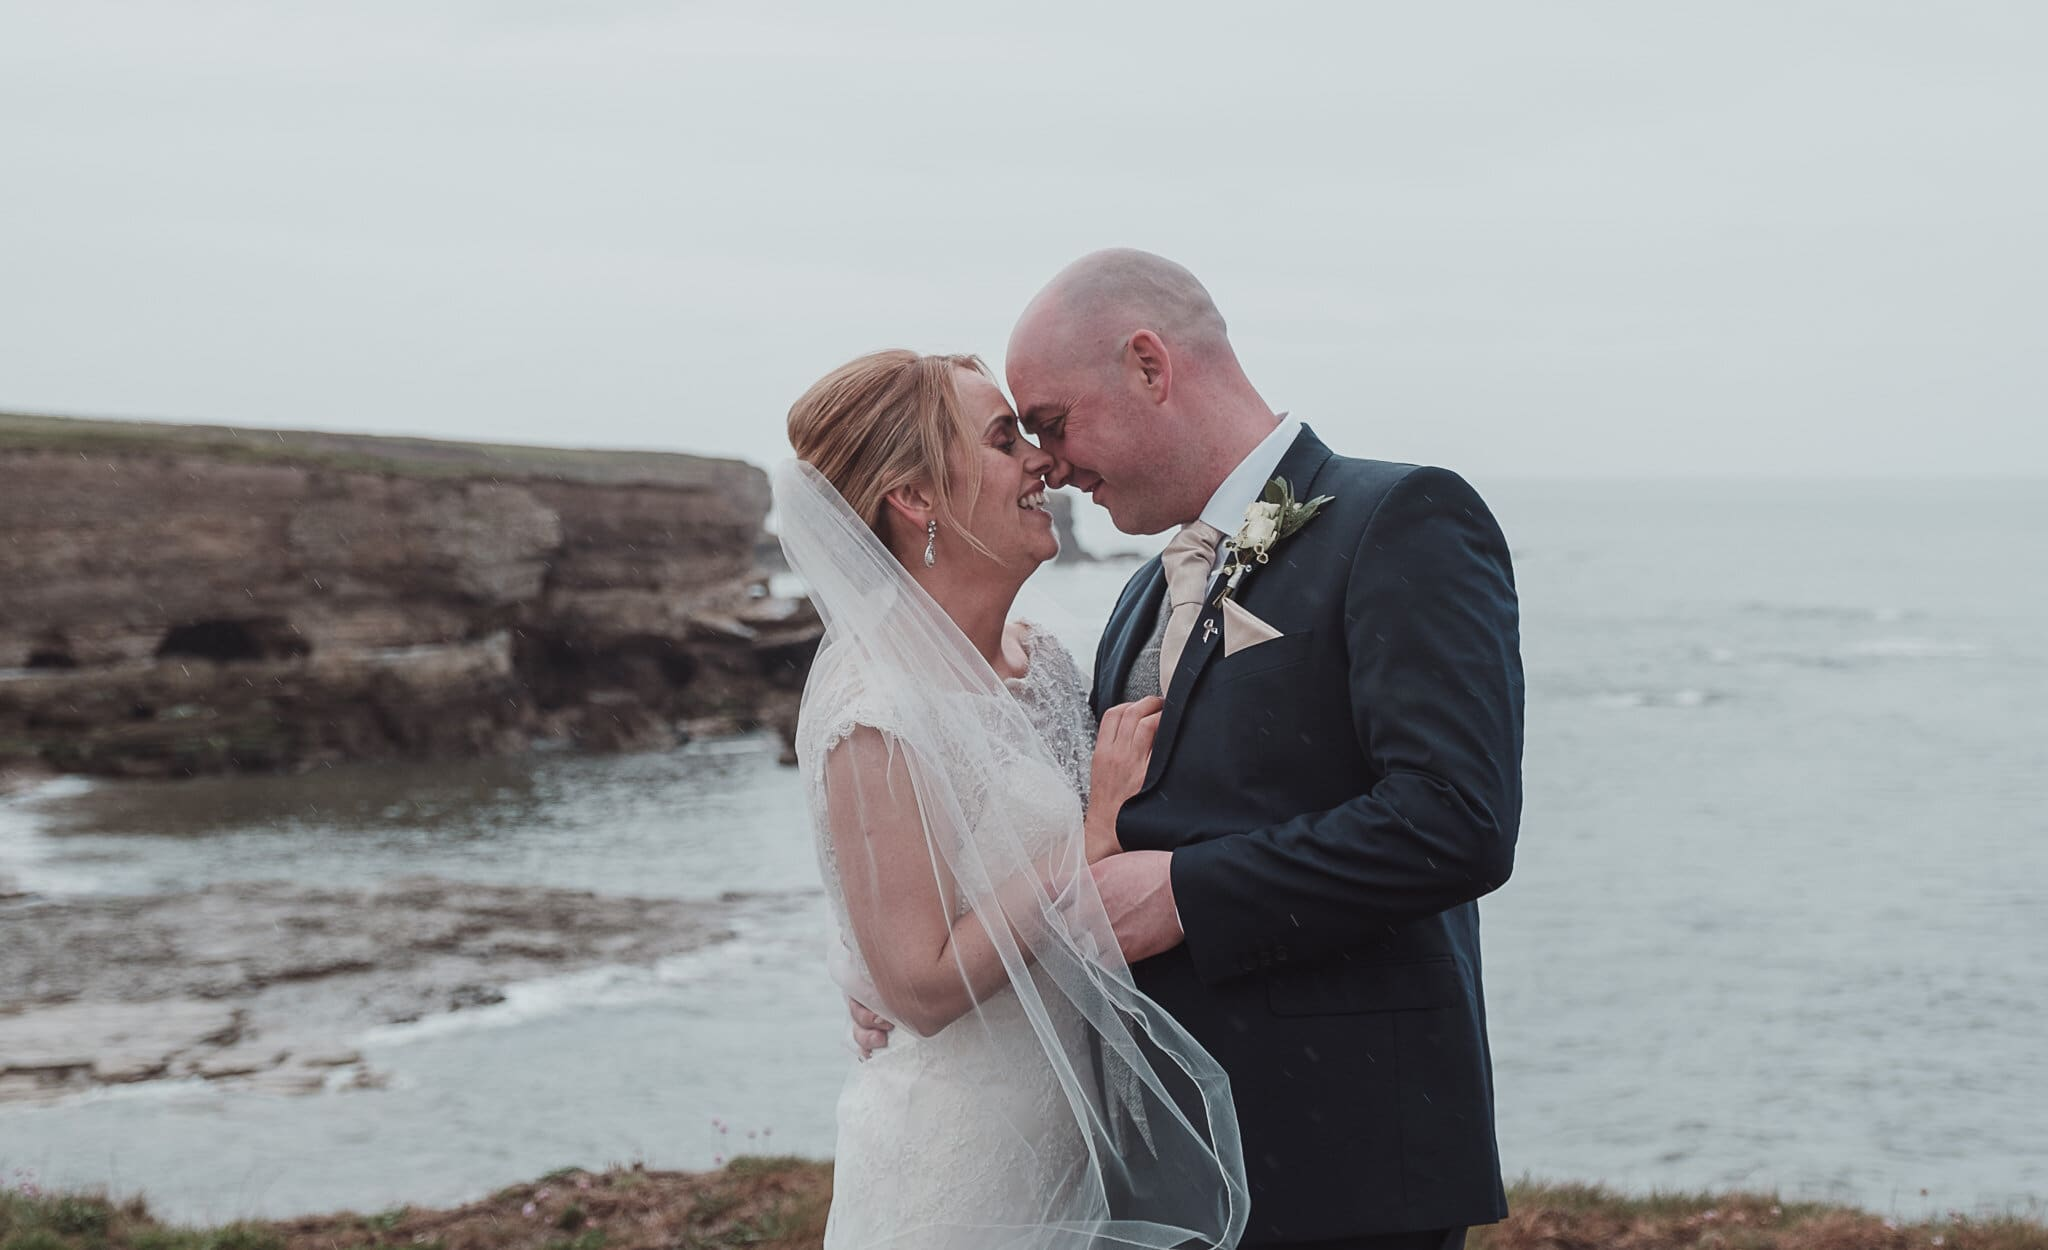 Chris and Bev | Sunderland Wedding Photographer